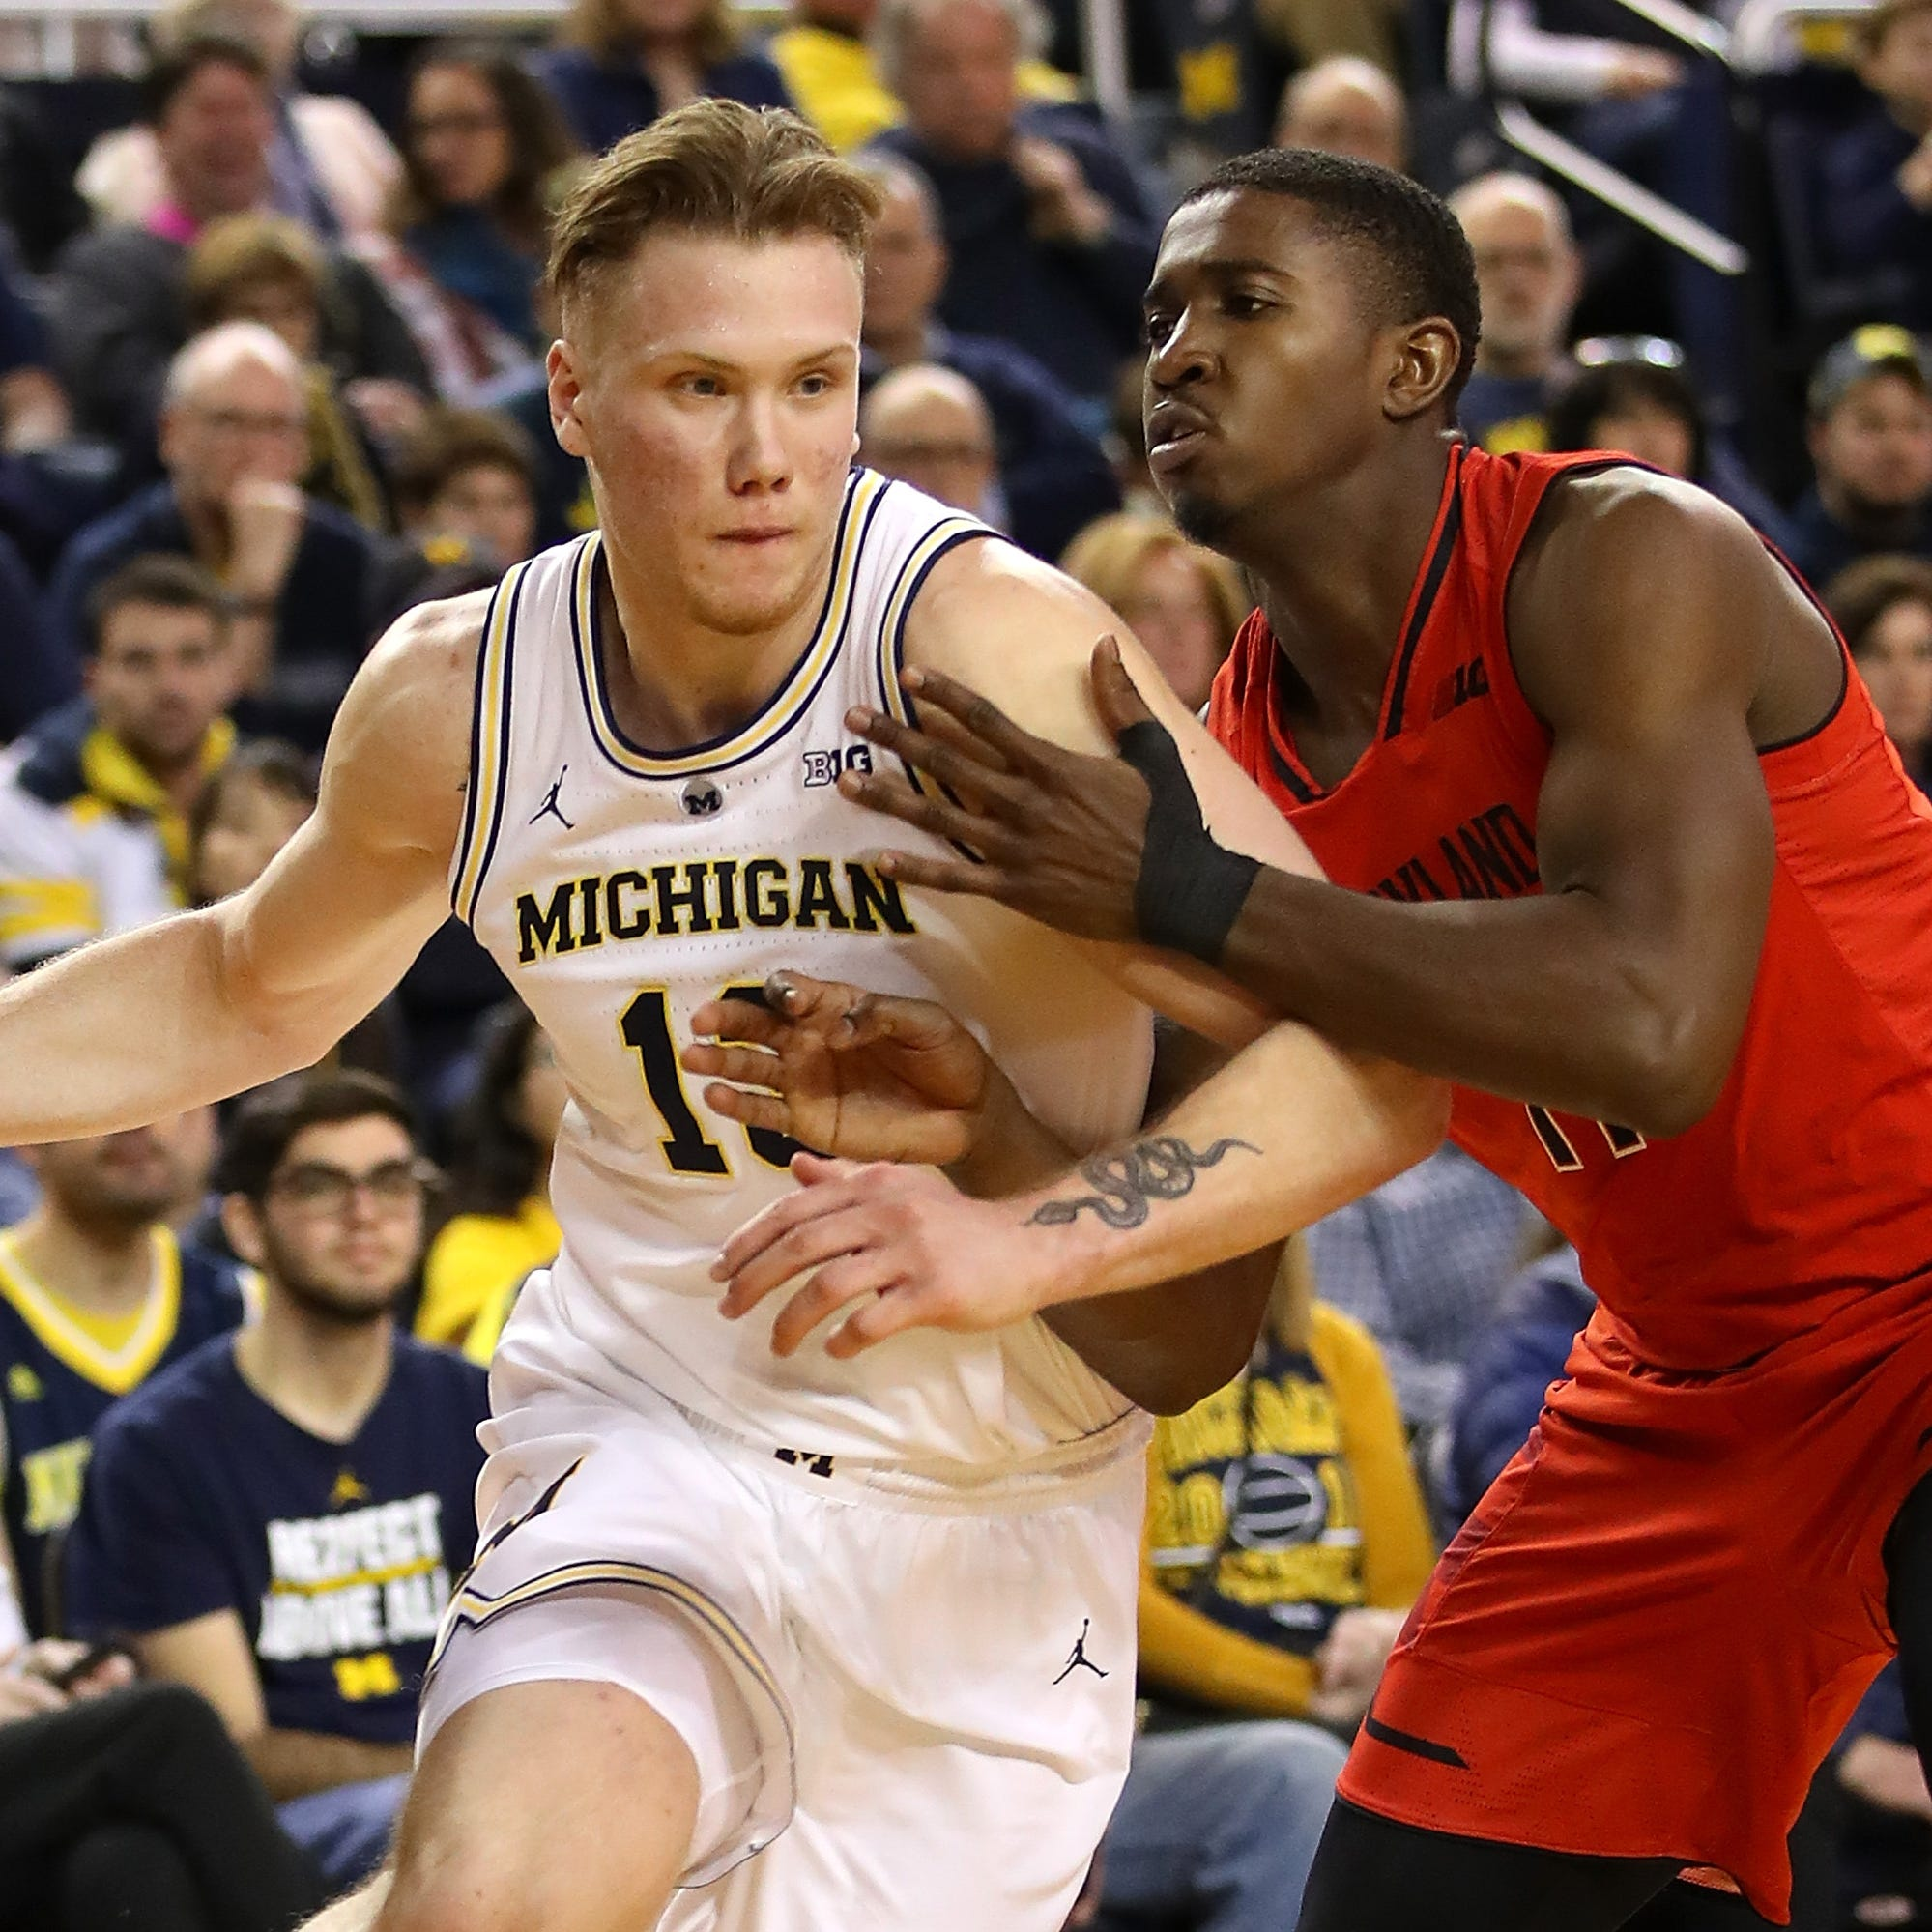 Game thread: Michigan bounces back with 65-52 win over Maryland